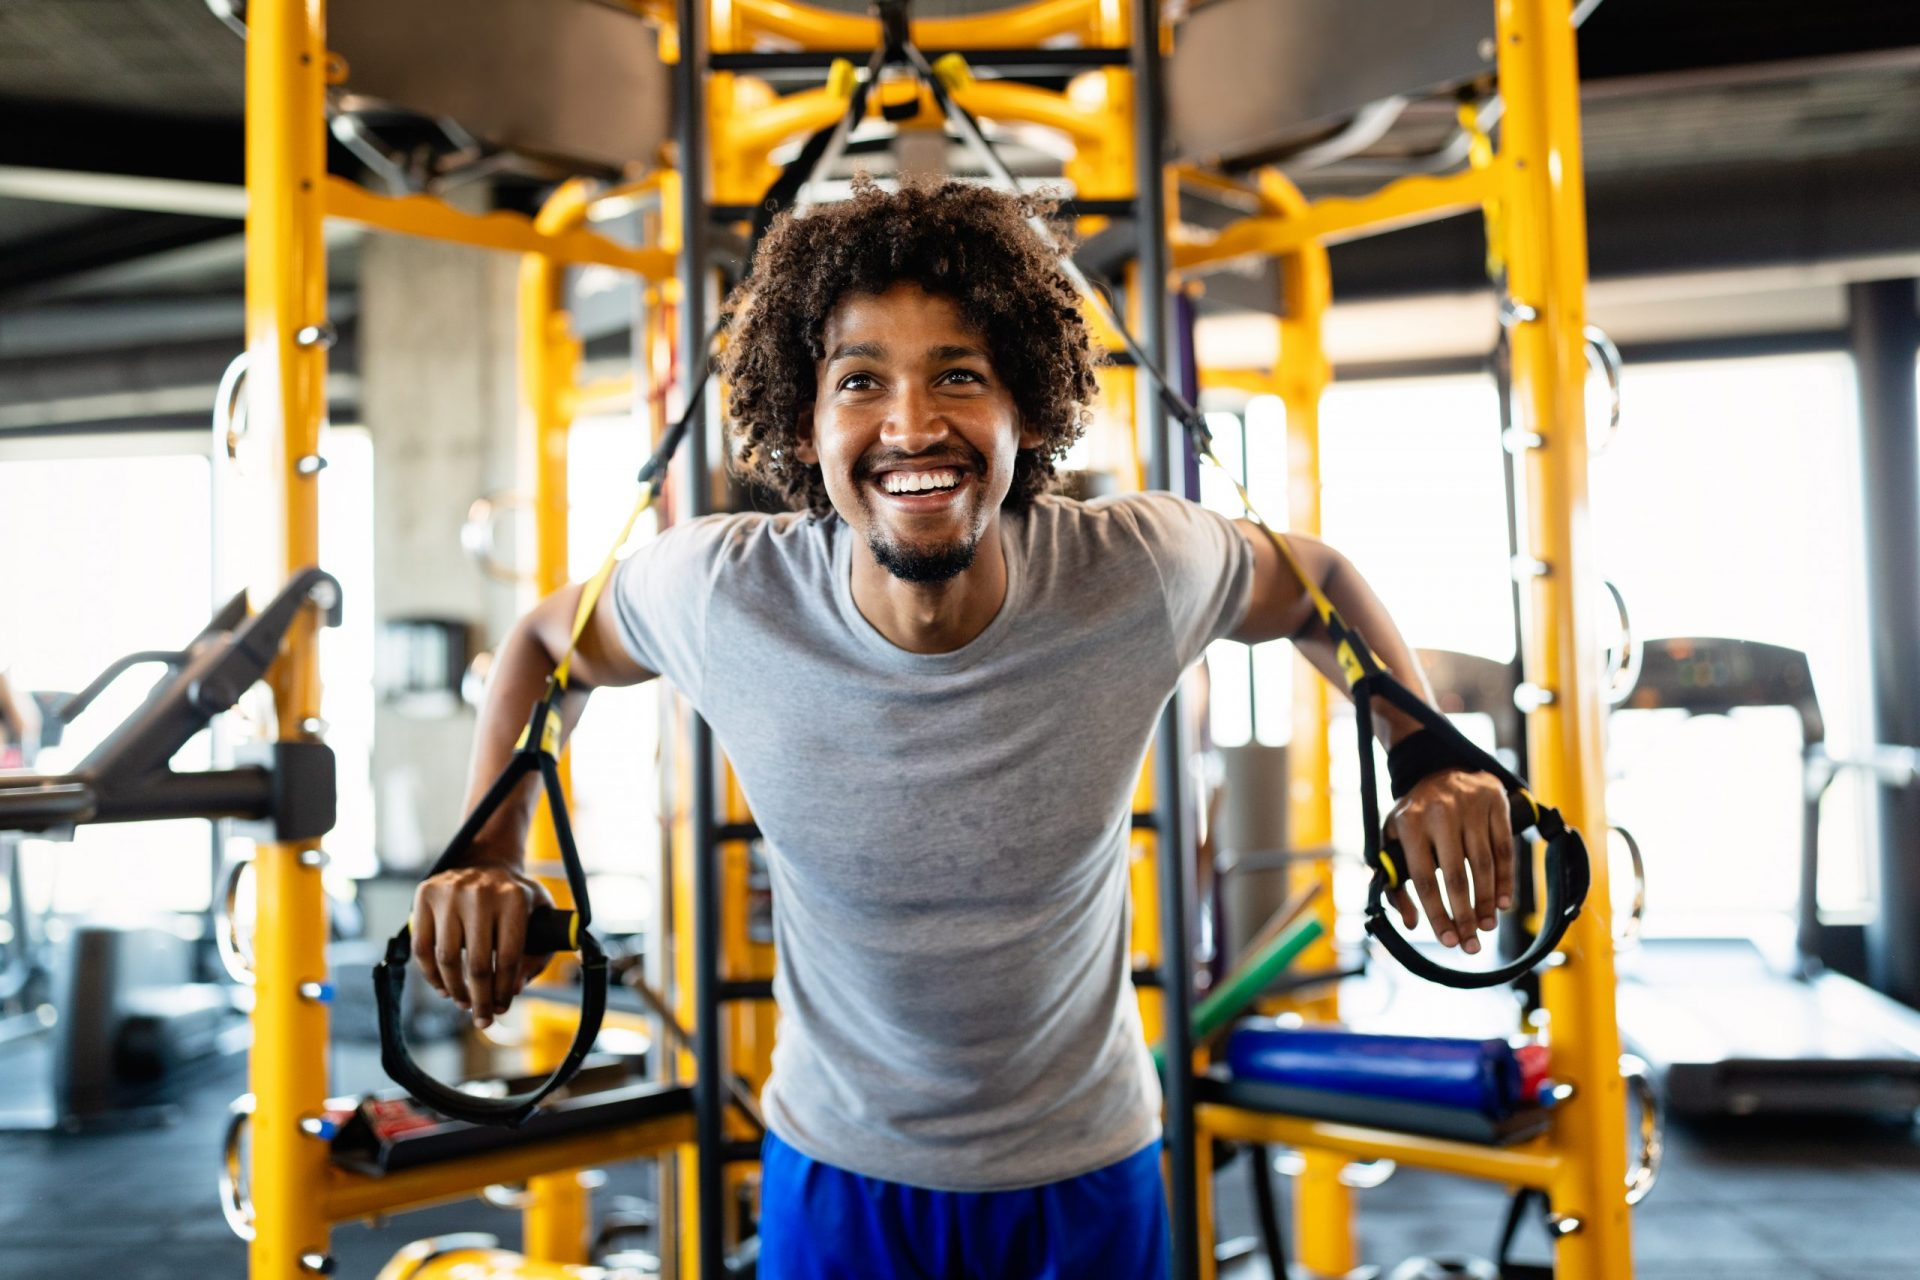 Fit handsome man having fitness TRX training at gym